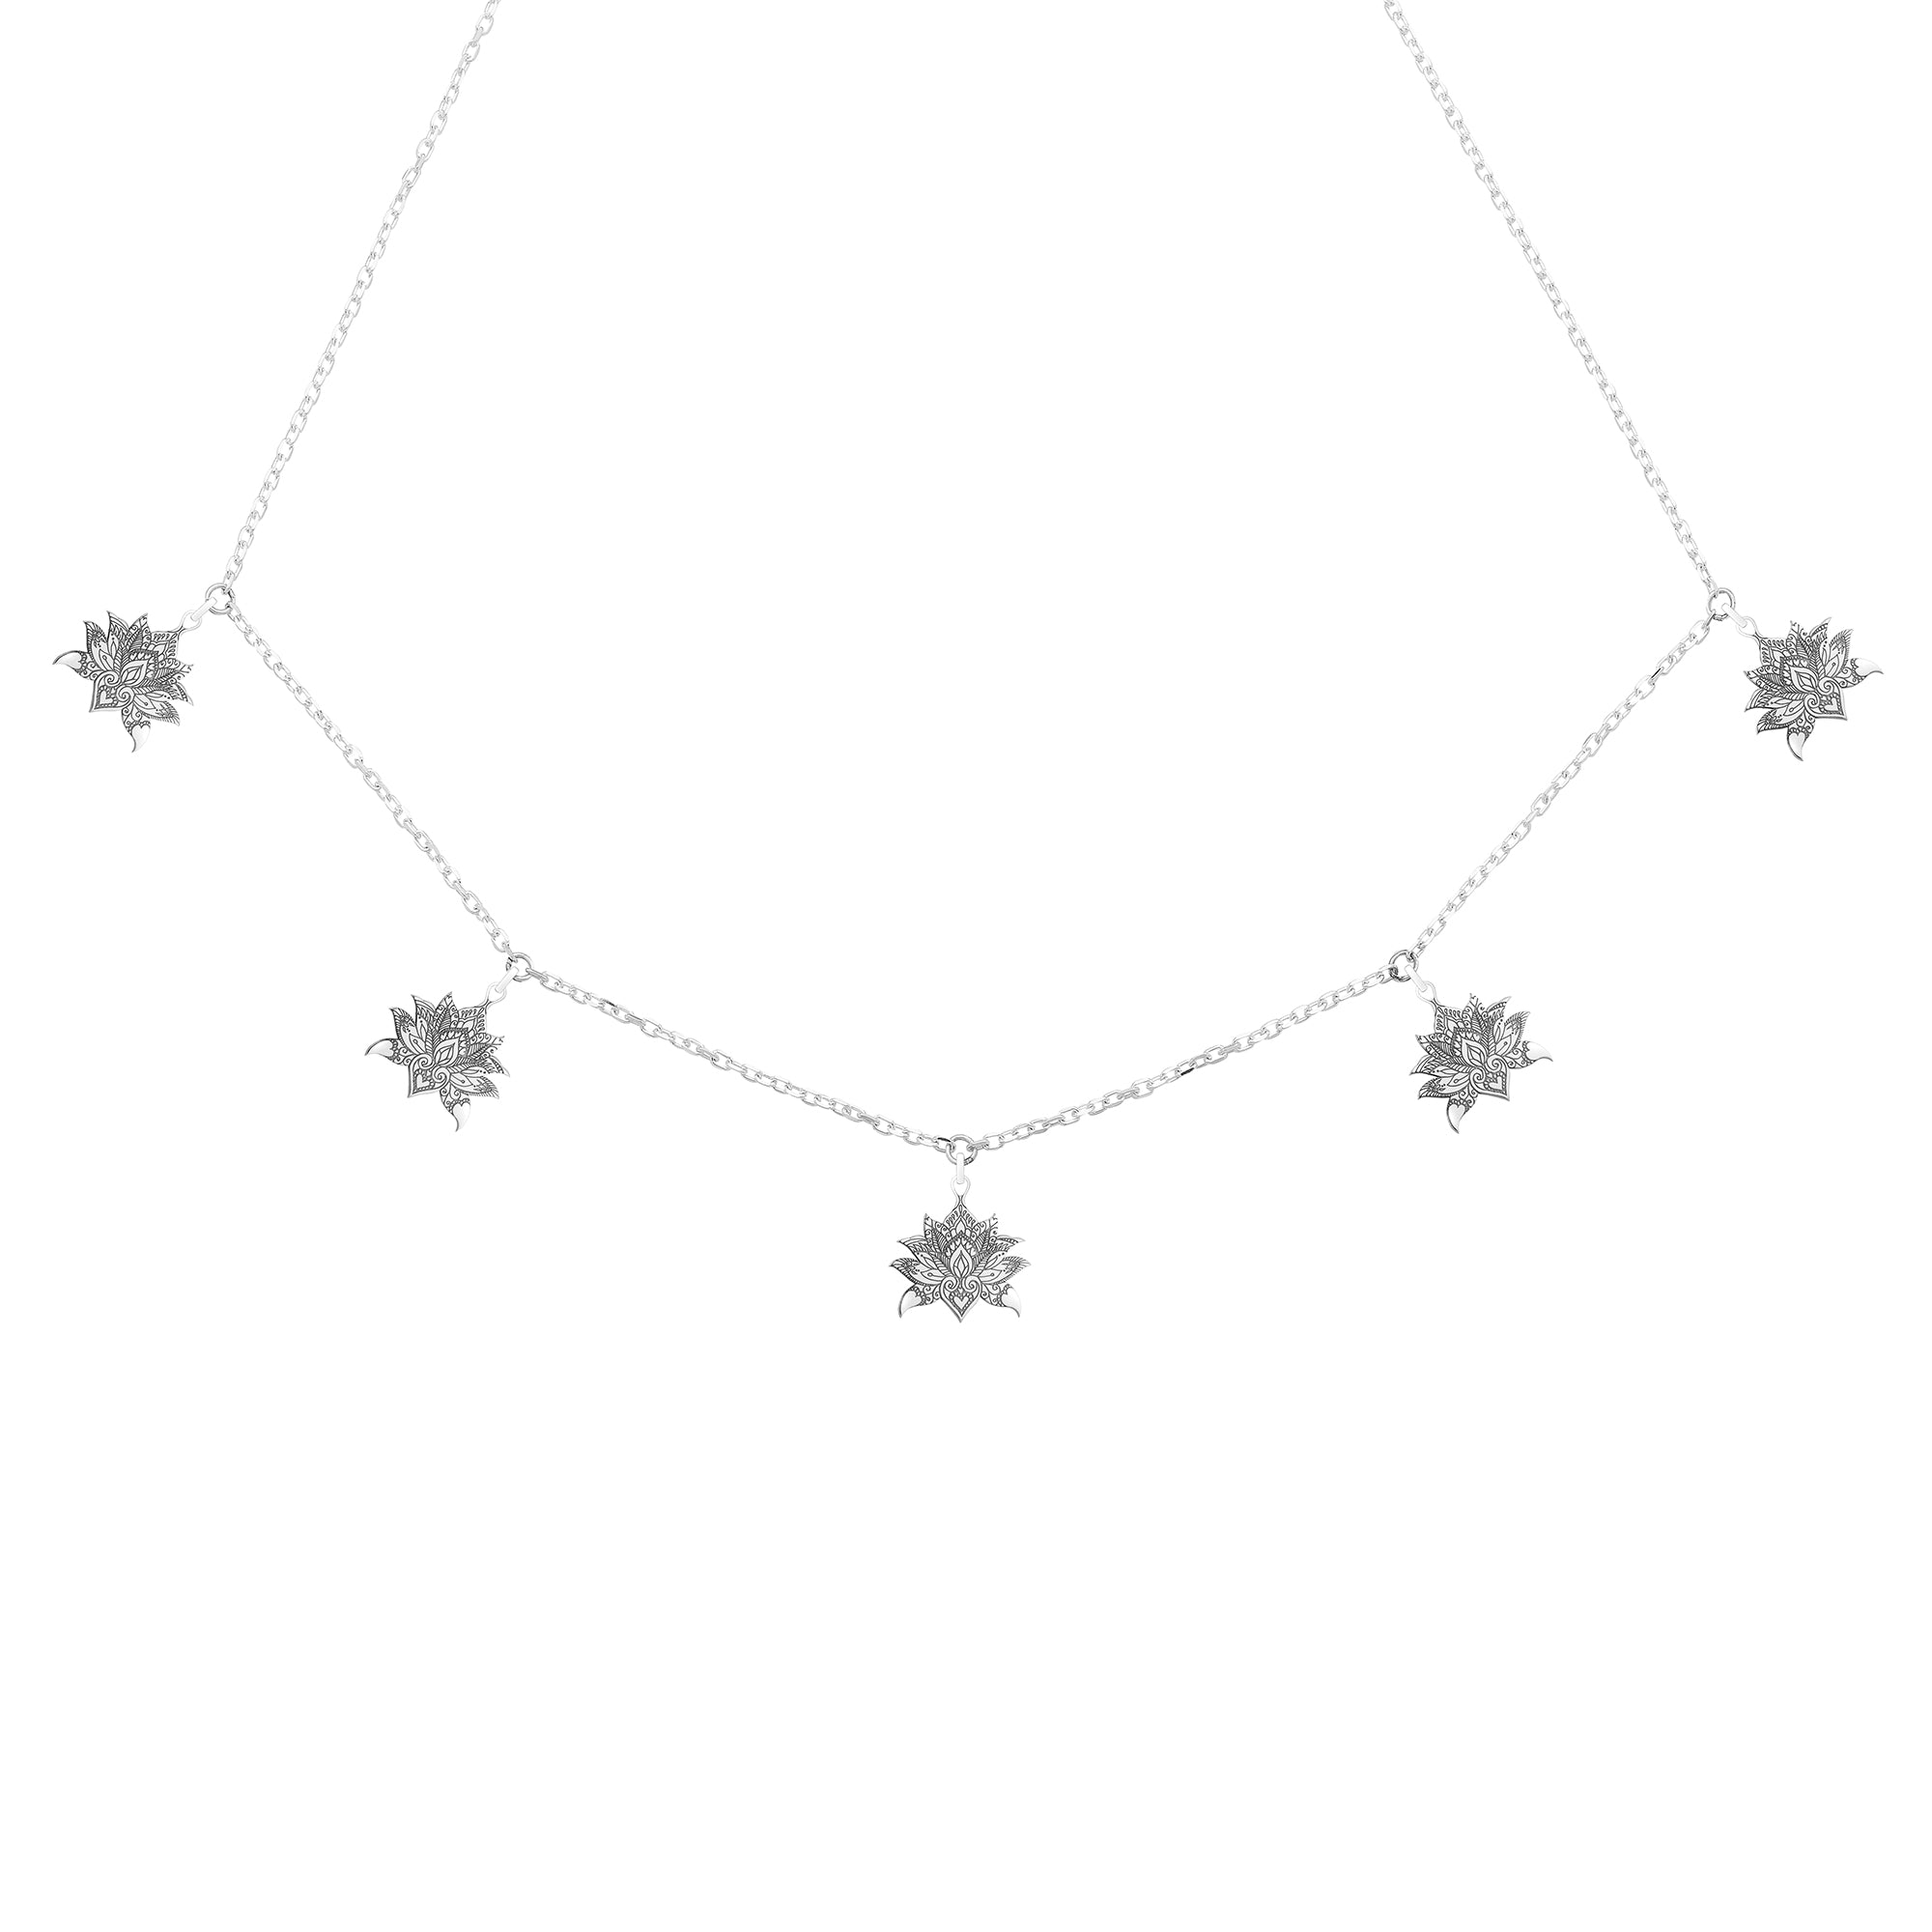 Lotus Flower - 5 Charm Necklace